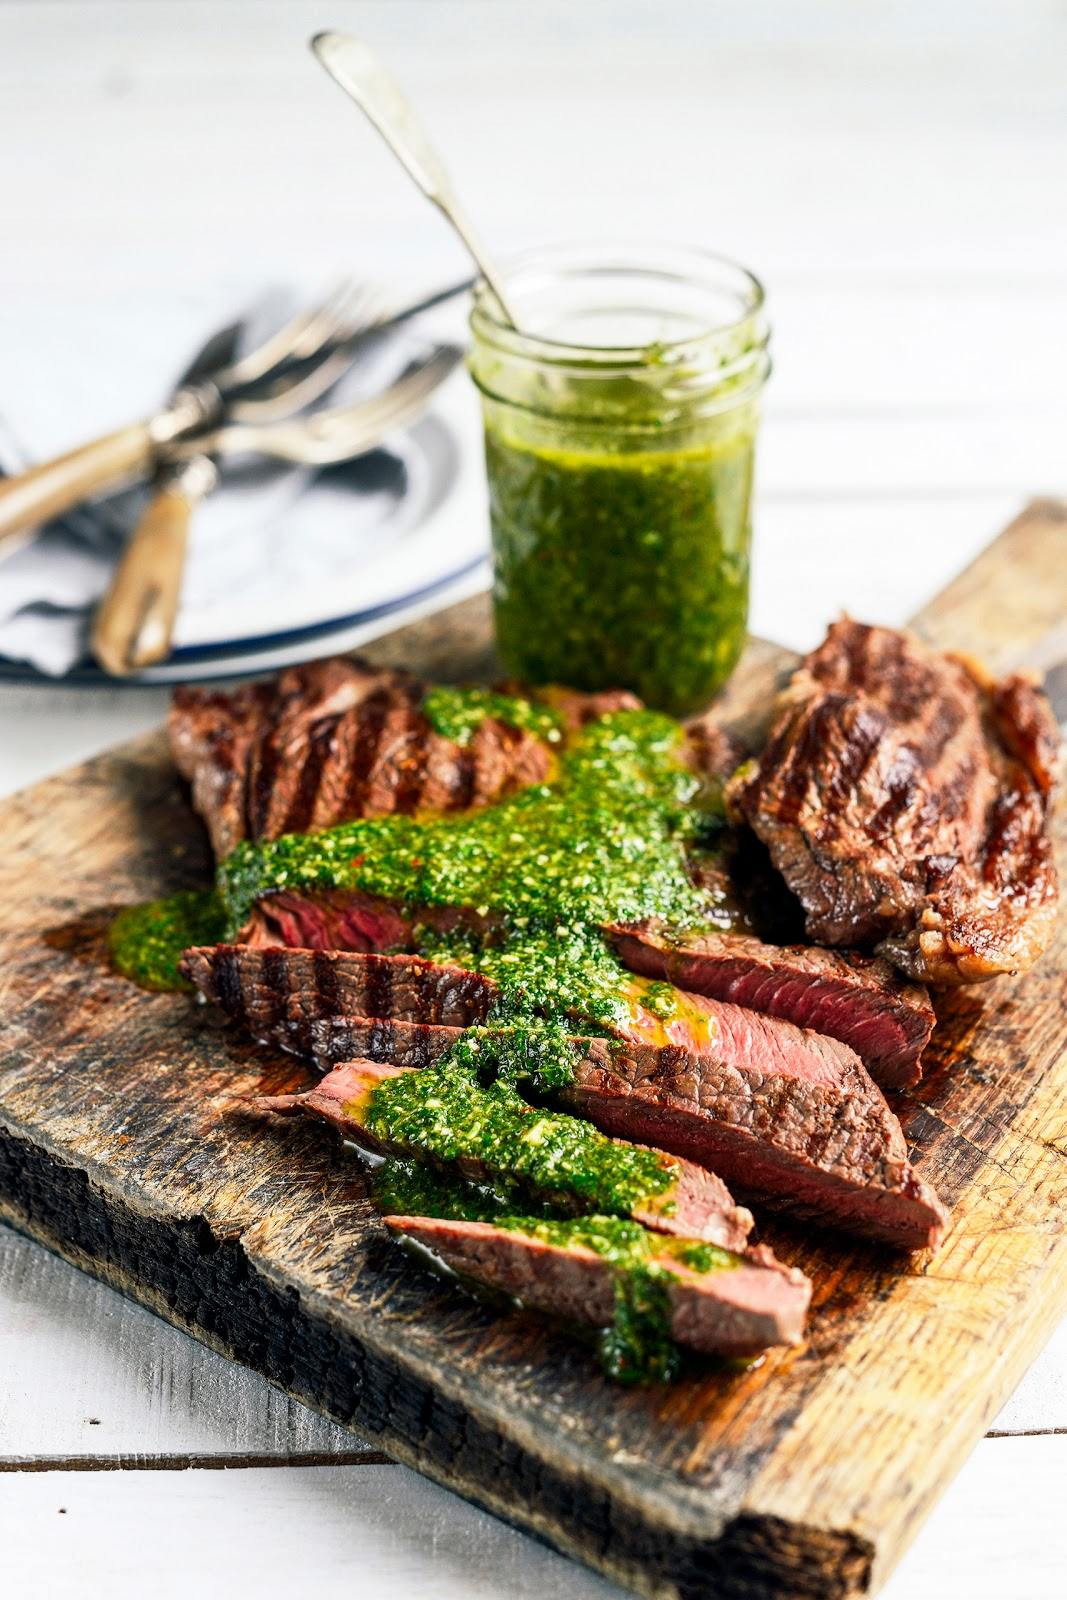 From The Kitchen: Barbecue Steak with Chimichurri Sauce